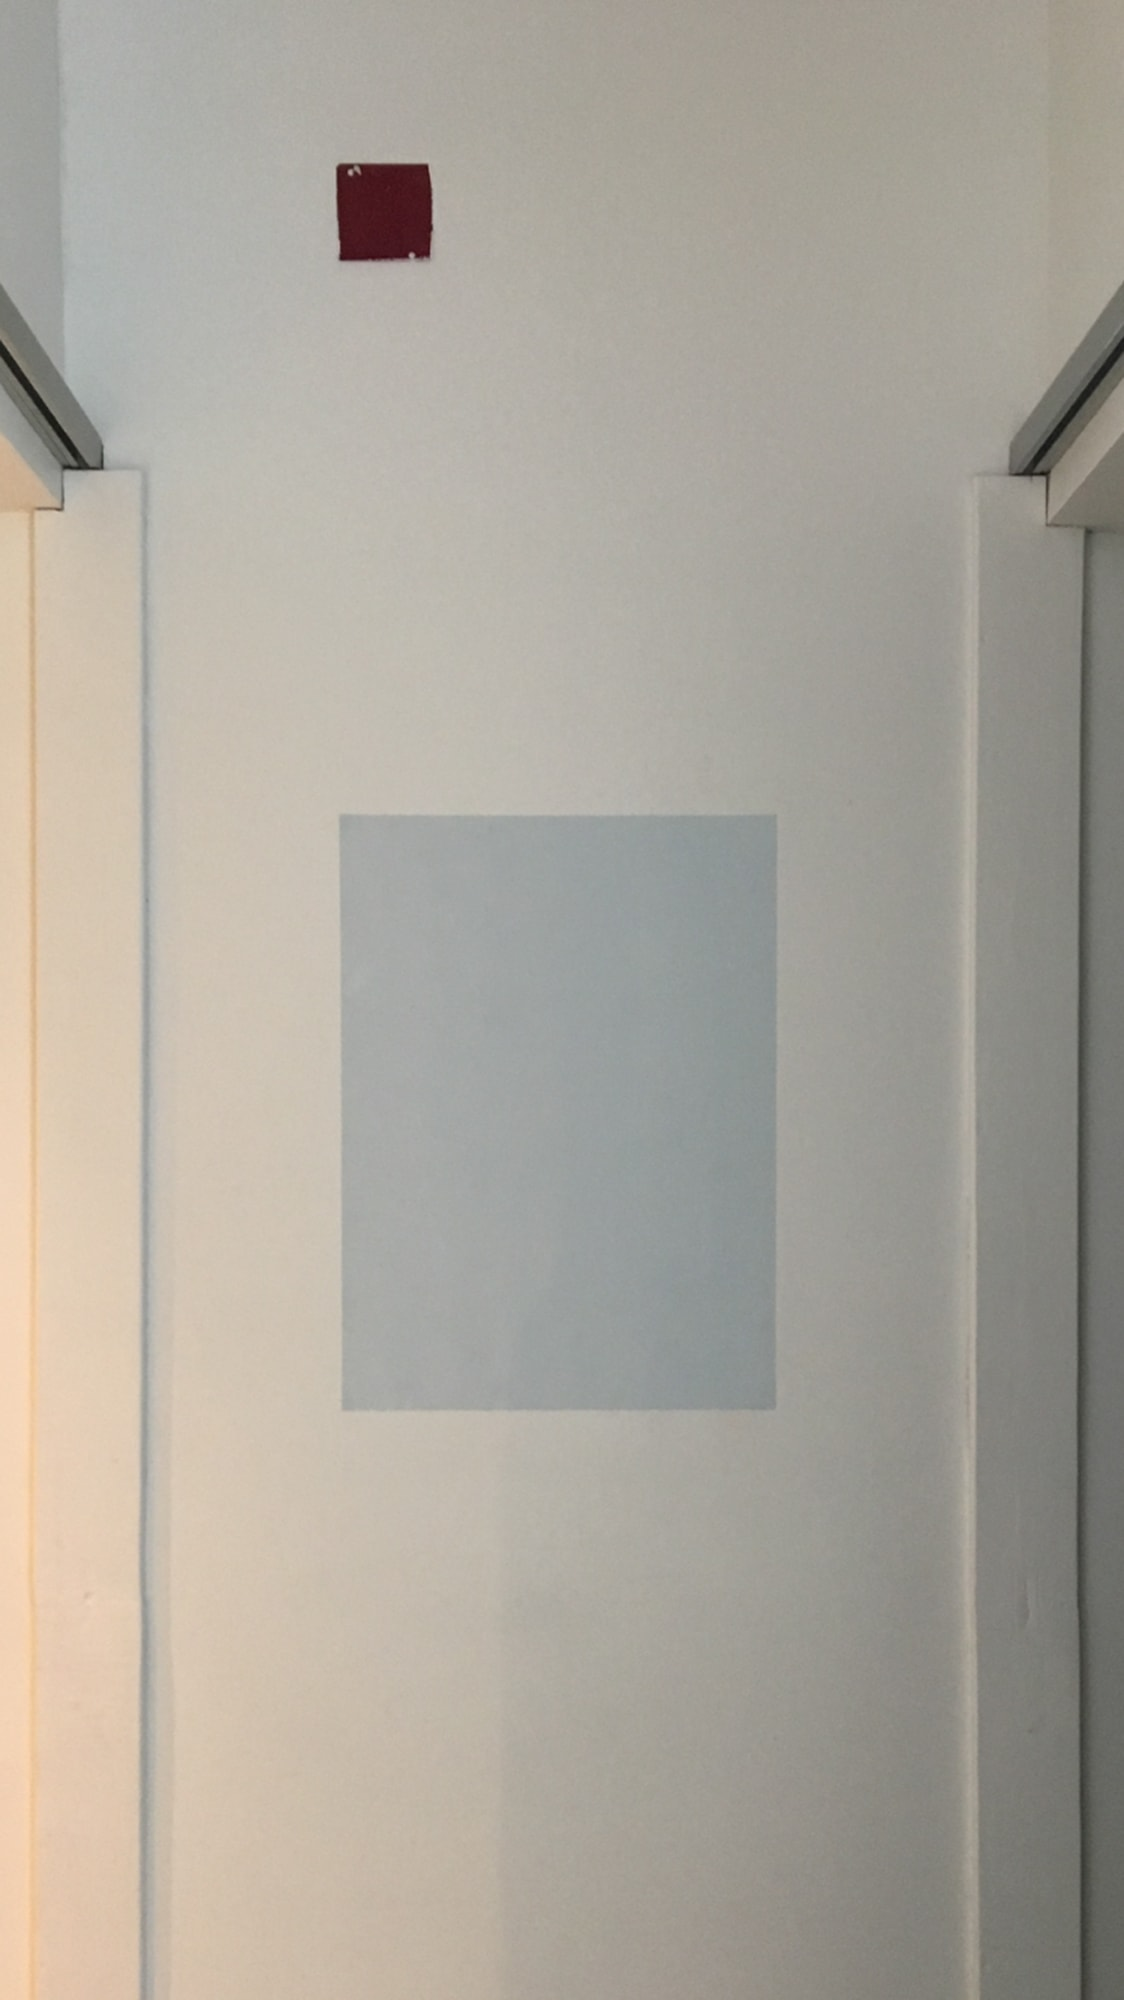 Randy Gibson's <em>Tomorrow Is A New Day</em> installed between the restrooms at Wild Project, NYC